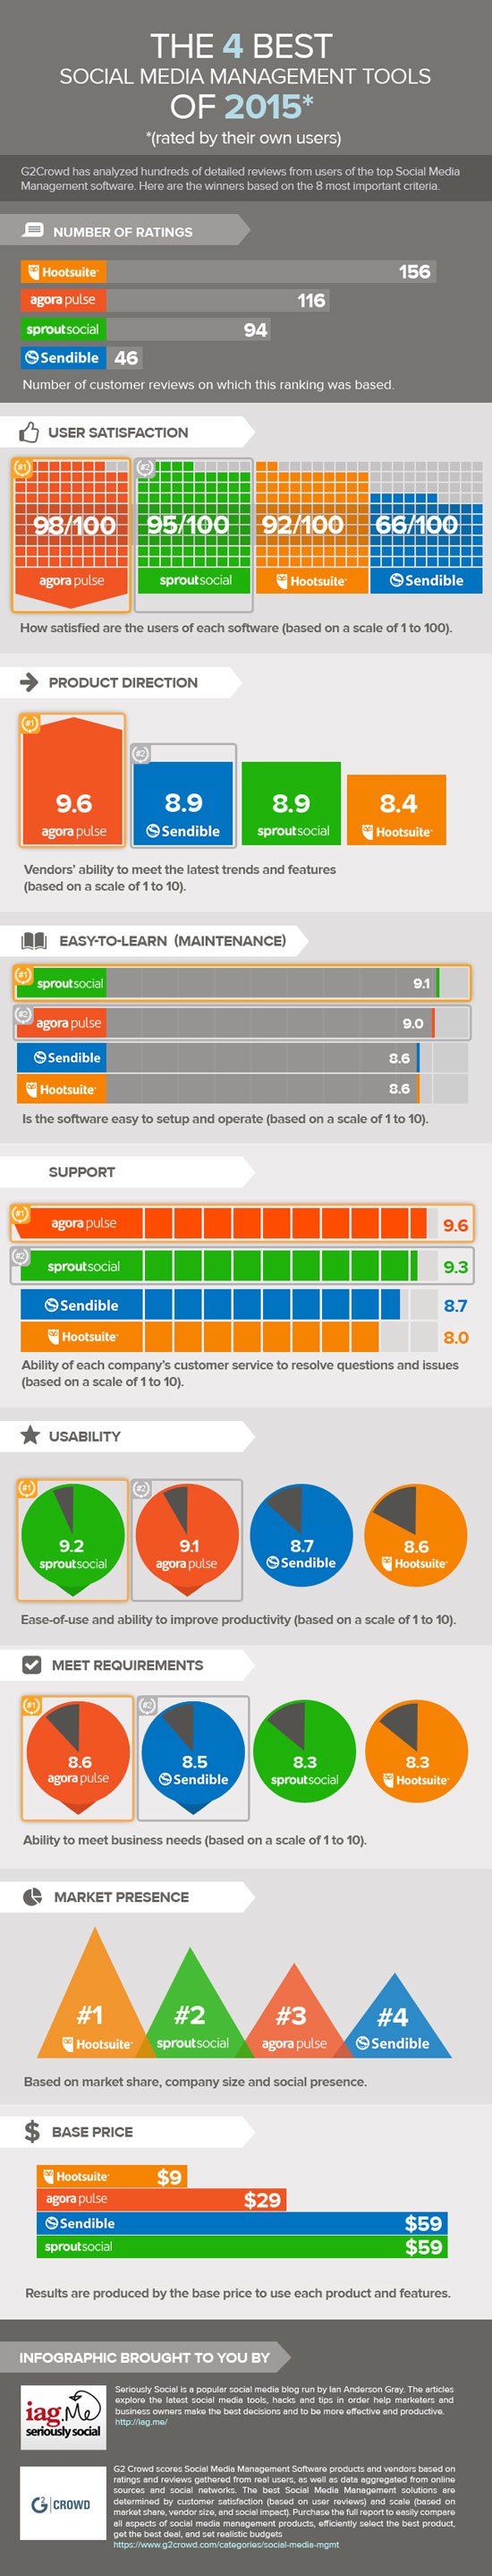 Top 4 Rated Social Media Management Tools [Infographic ...